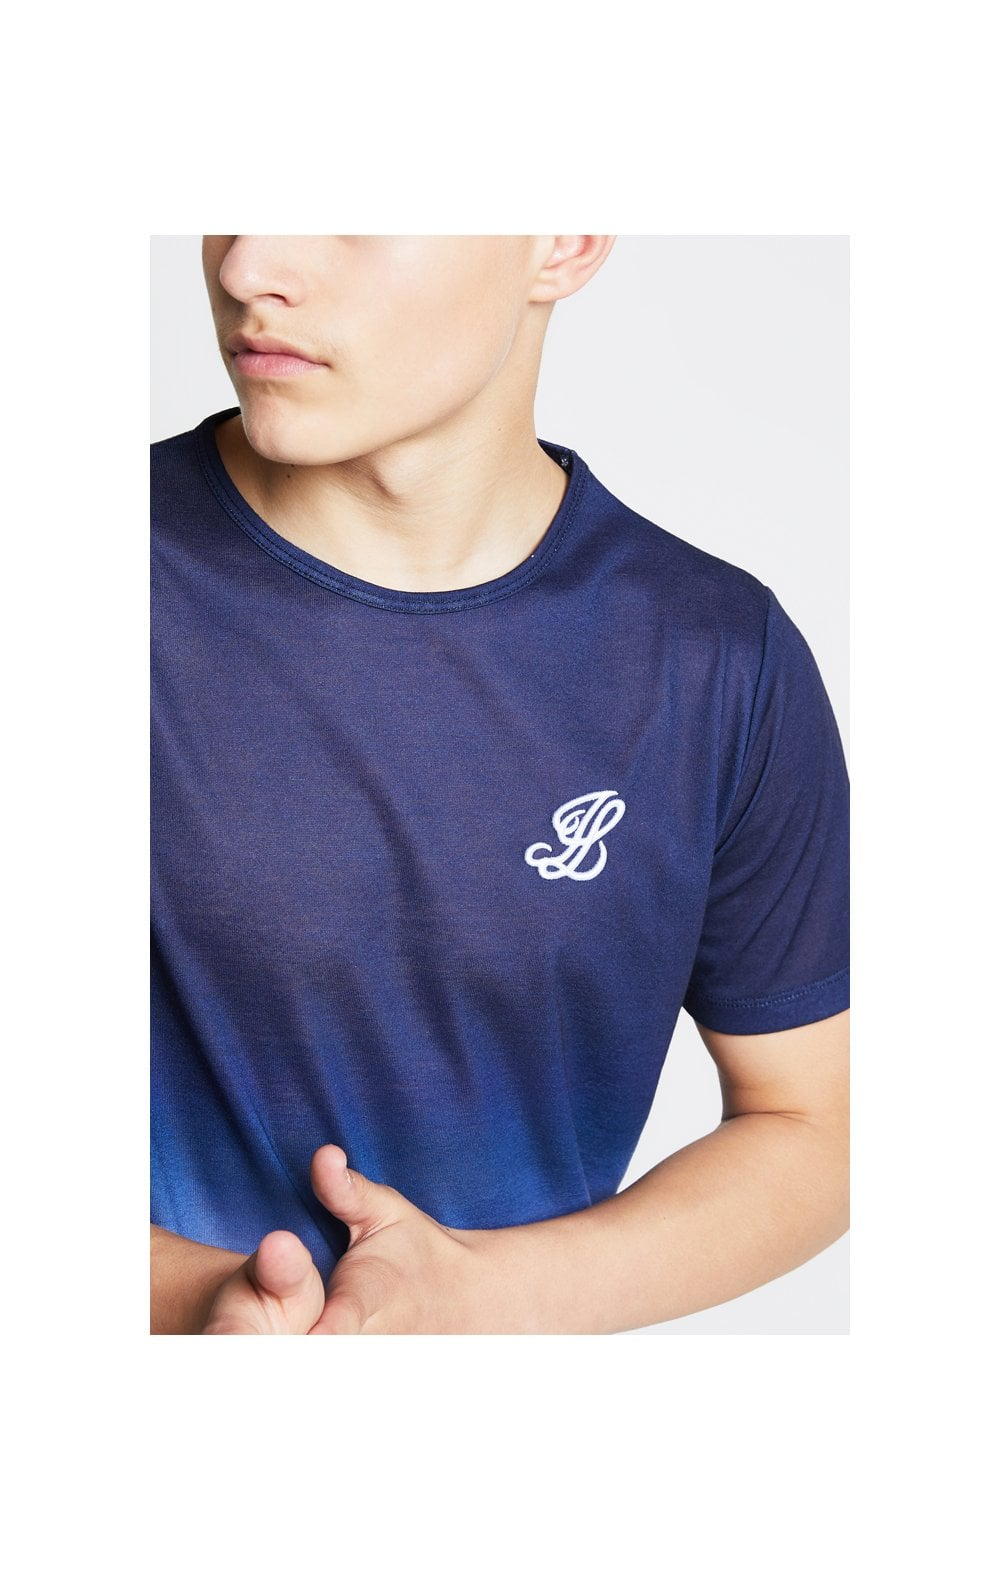 Illusive London Fade Tee - Navy & White (1)